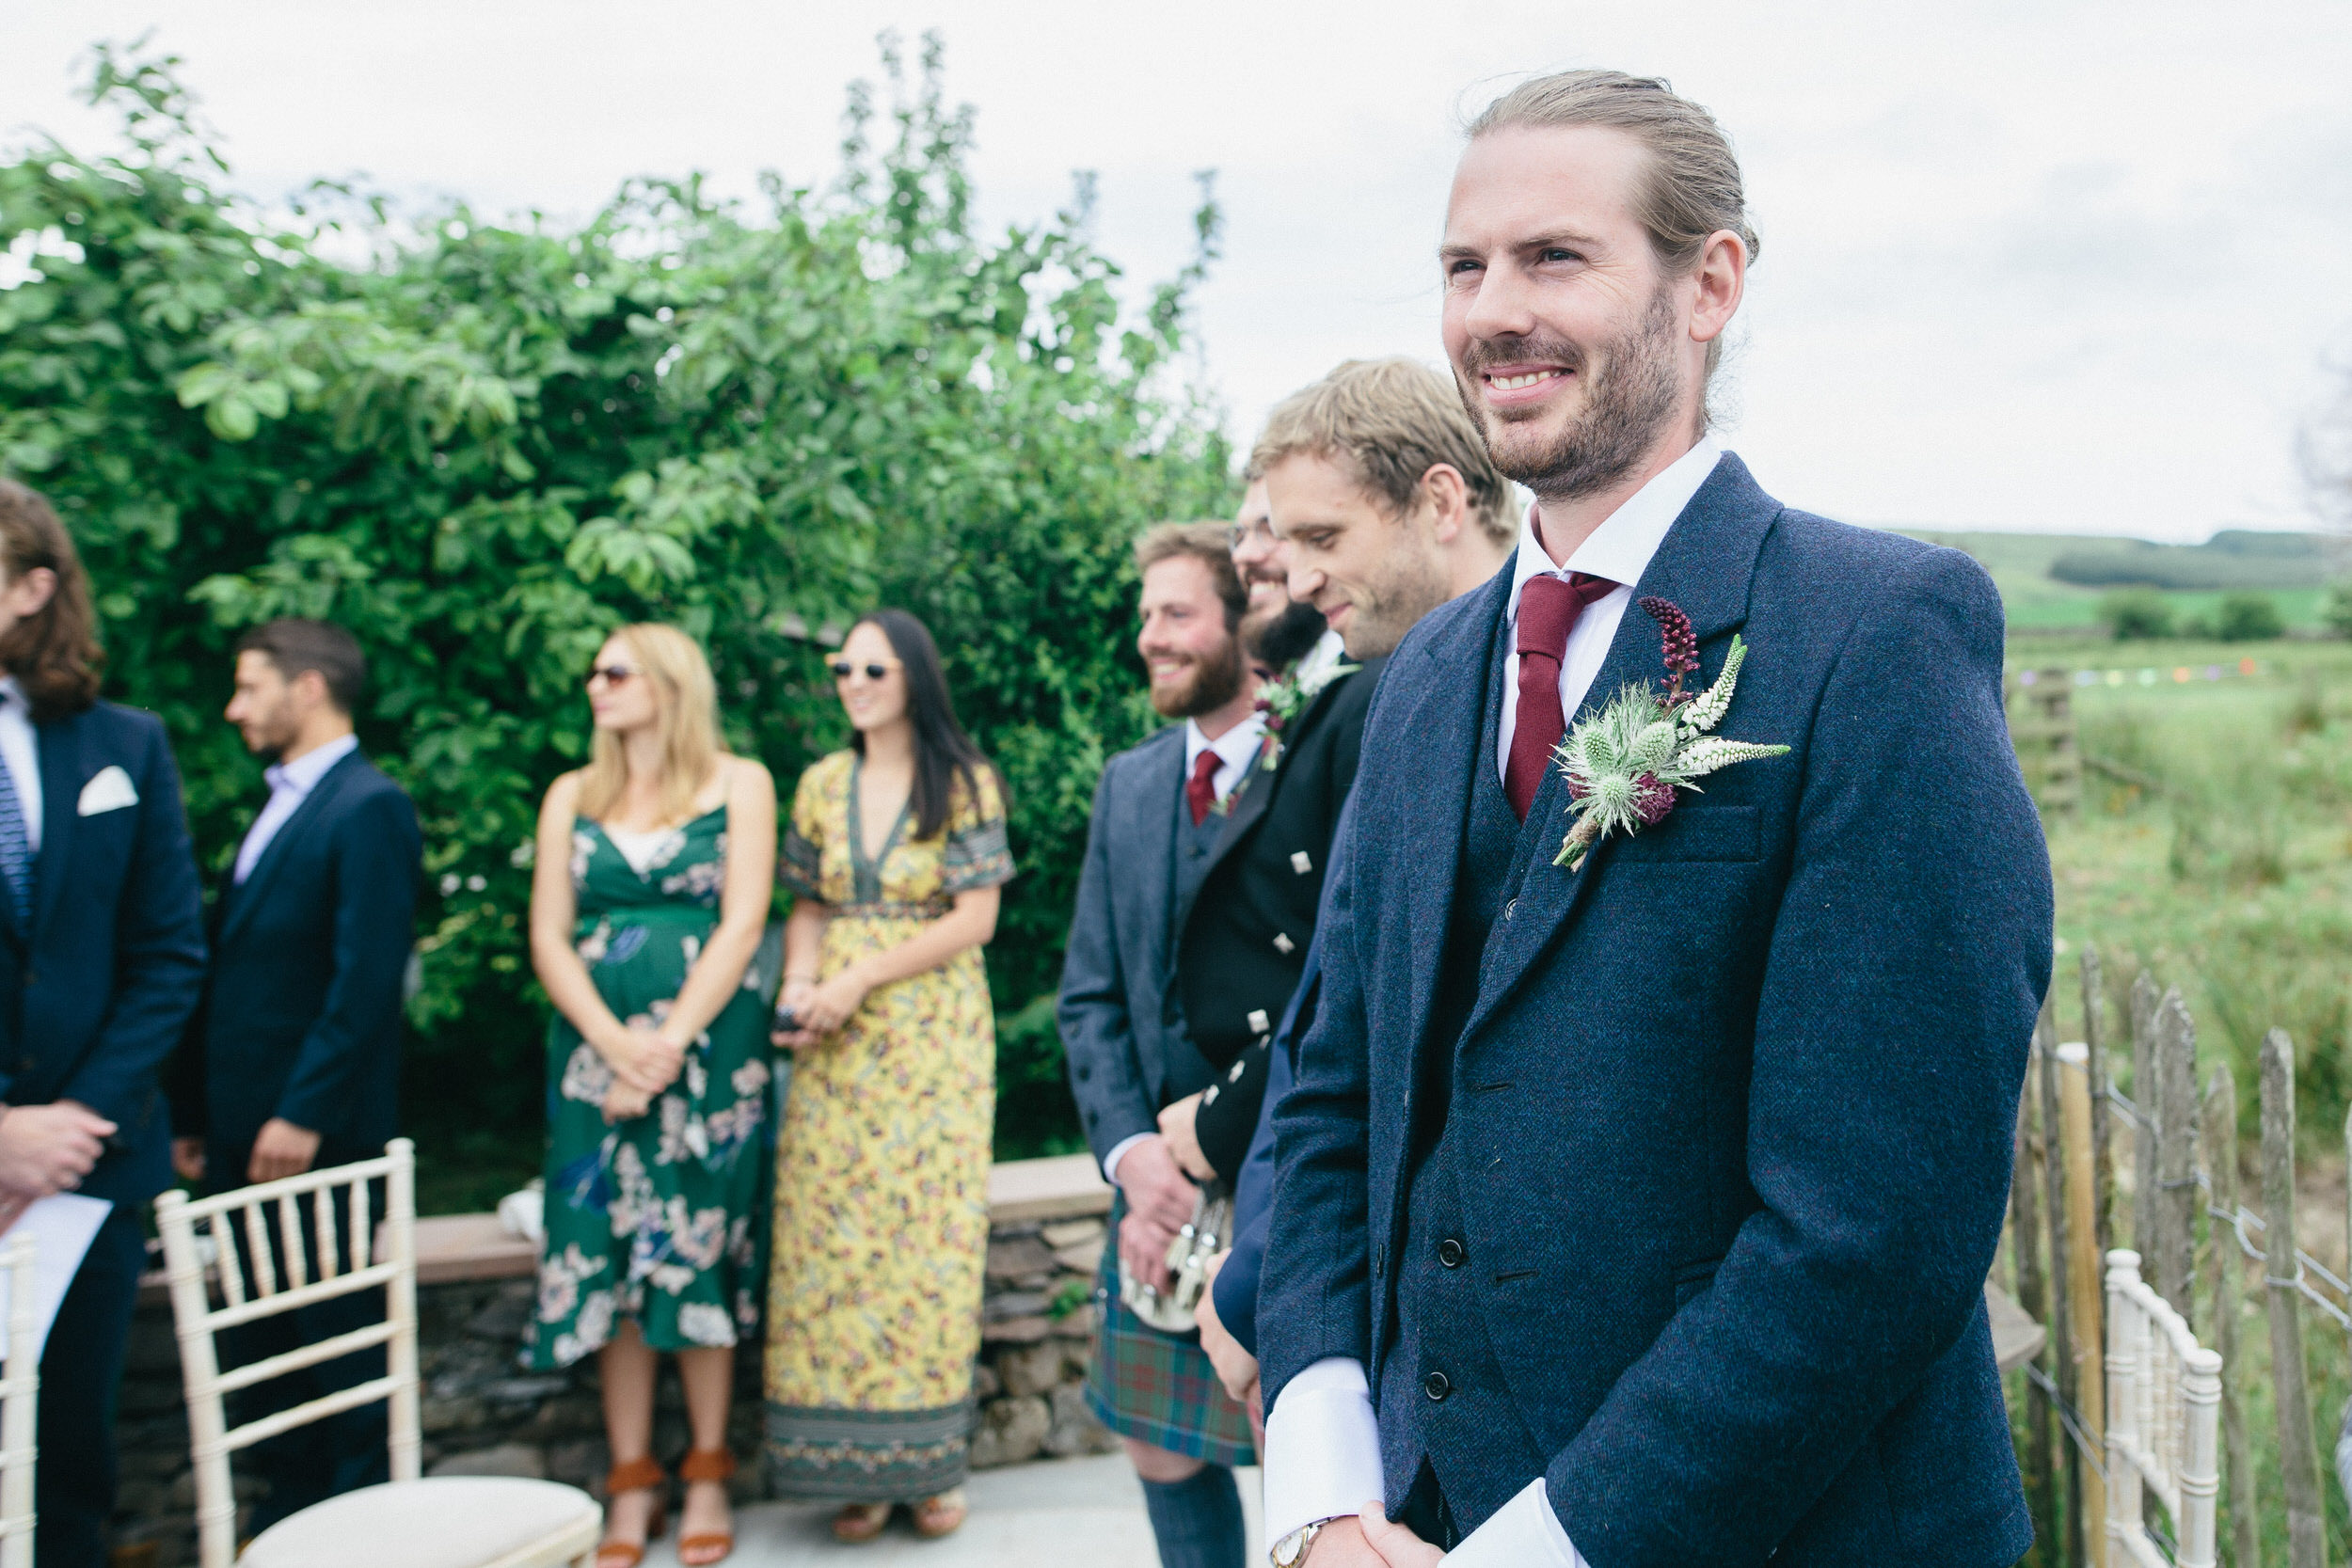 Alternative Quirky Wedding Photographer Scotland Borders Edinburgh 019.jpg